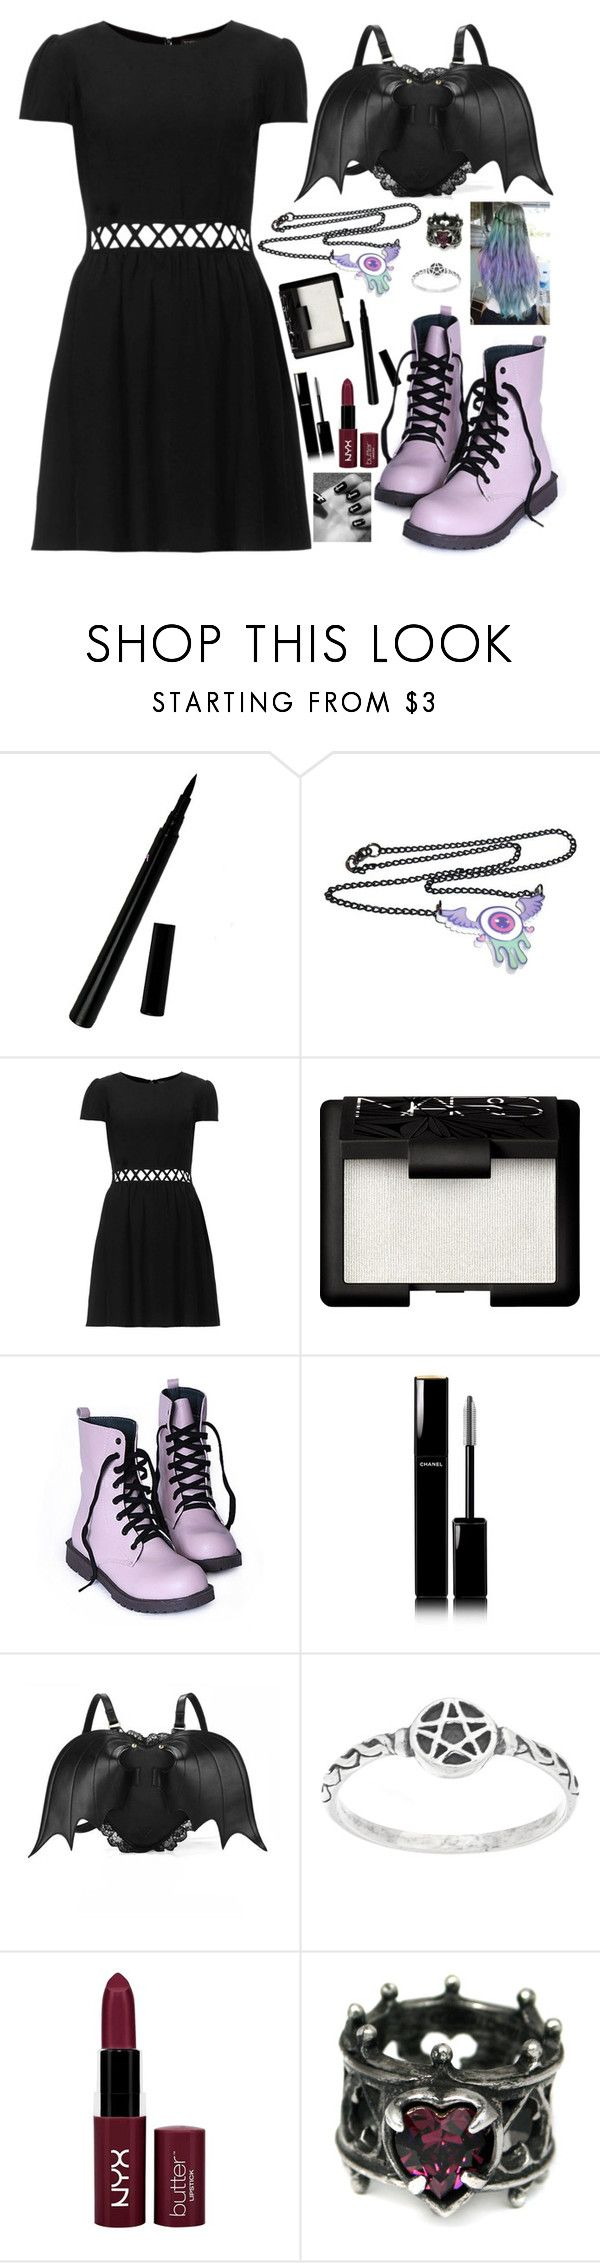 """""""Pastel Goth <3"""" by crazydirectionergirl ❤ liked on Polyvore featuring Topshop, NARS Cosmetics, Chanel, NYX and Leg Avenue"""